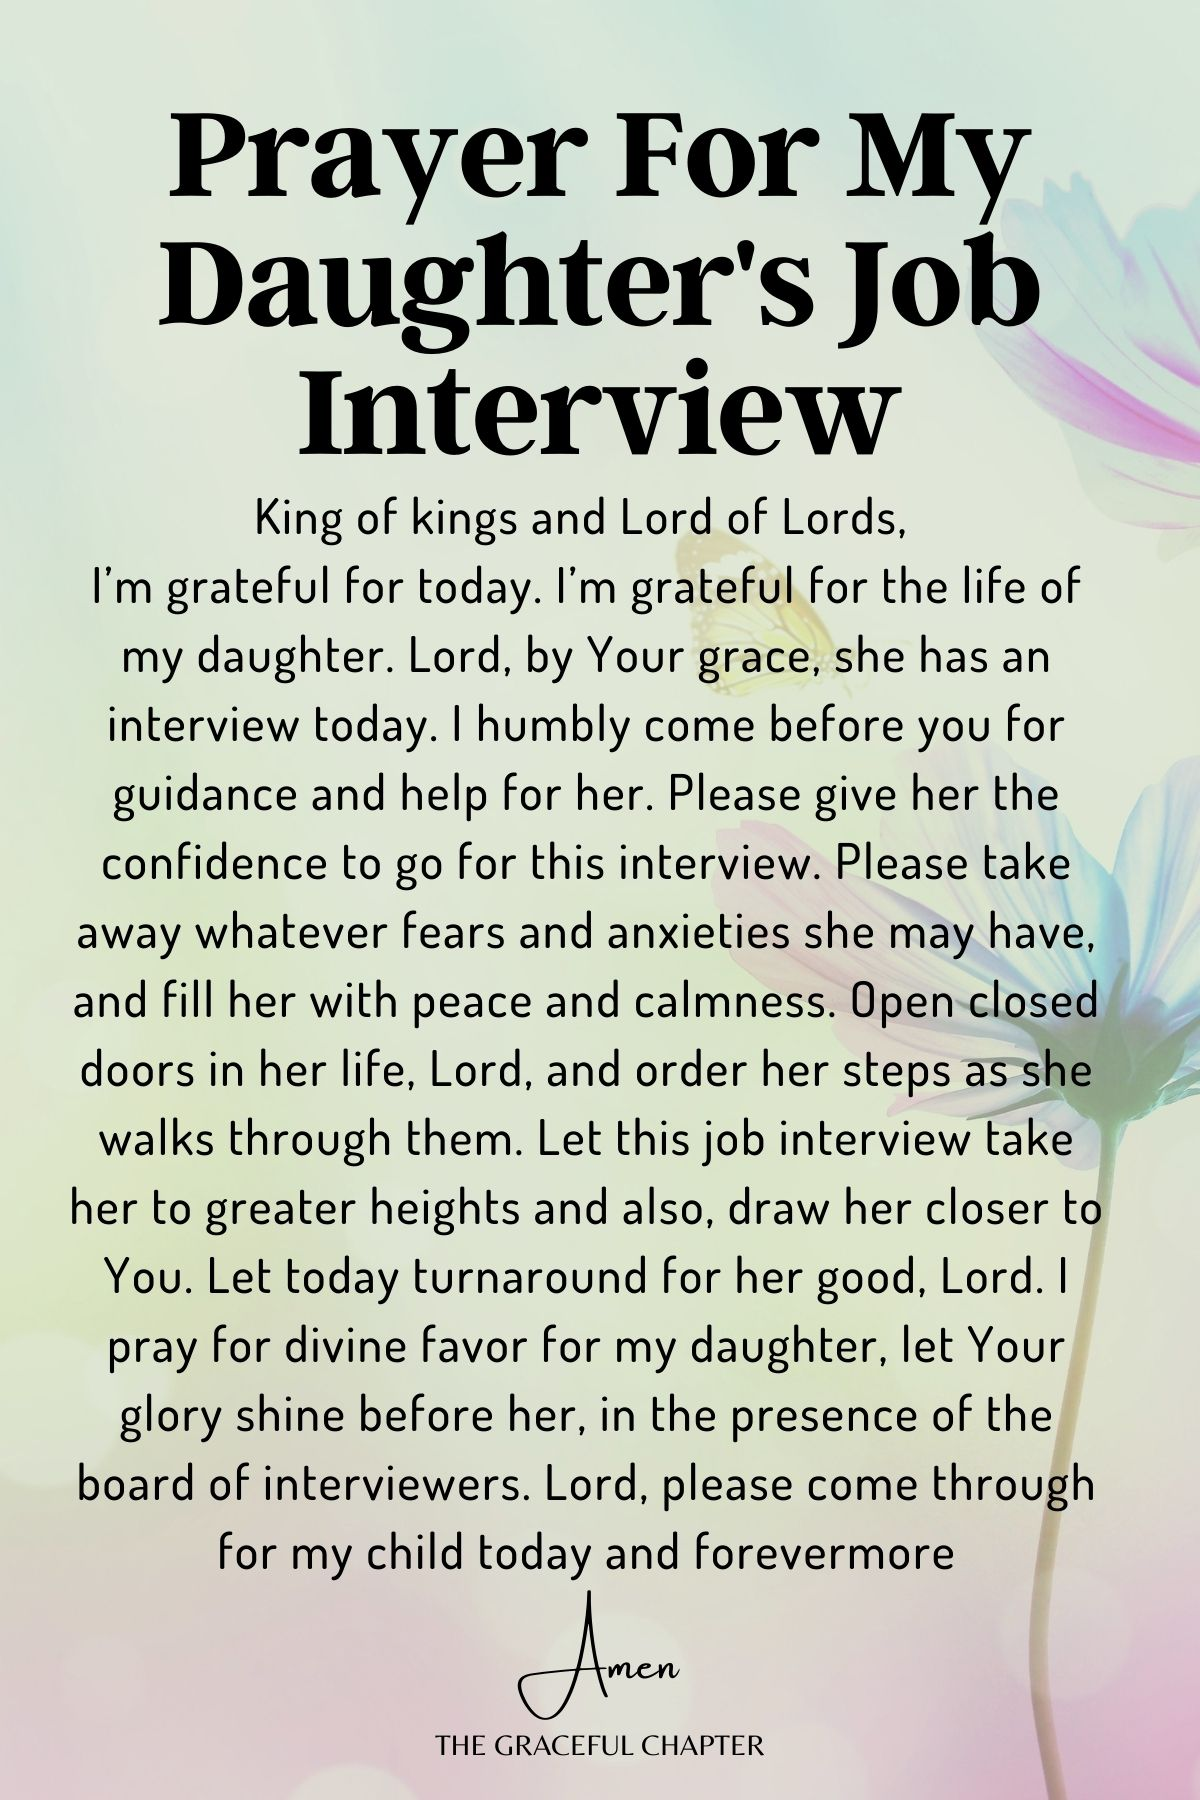 Prayer for my daughter's job interview